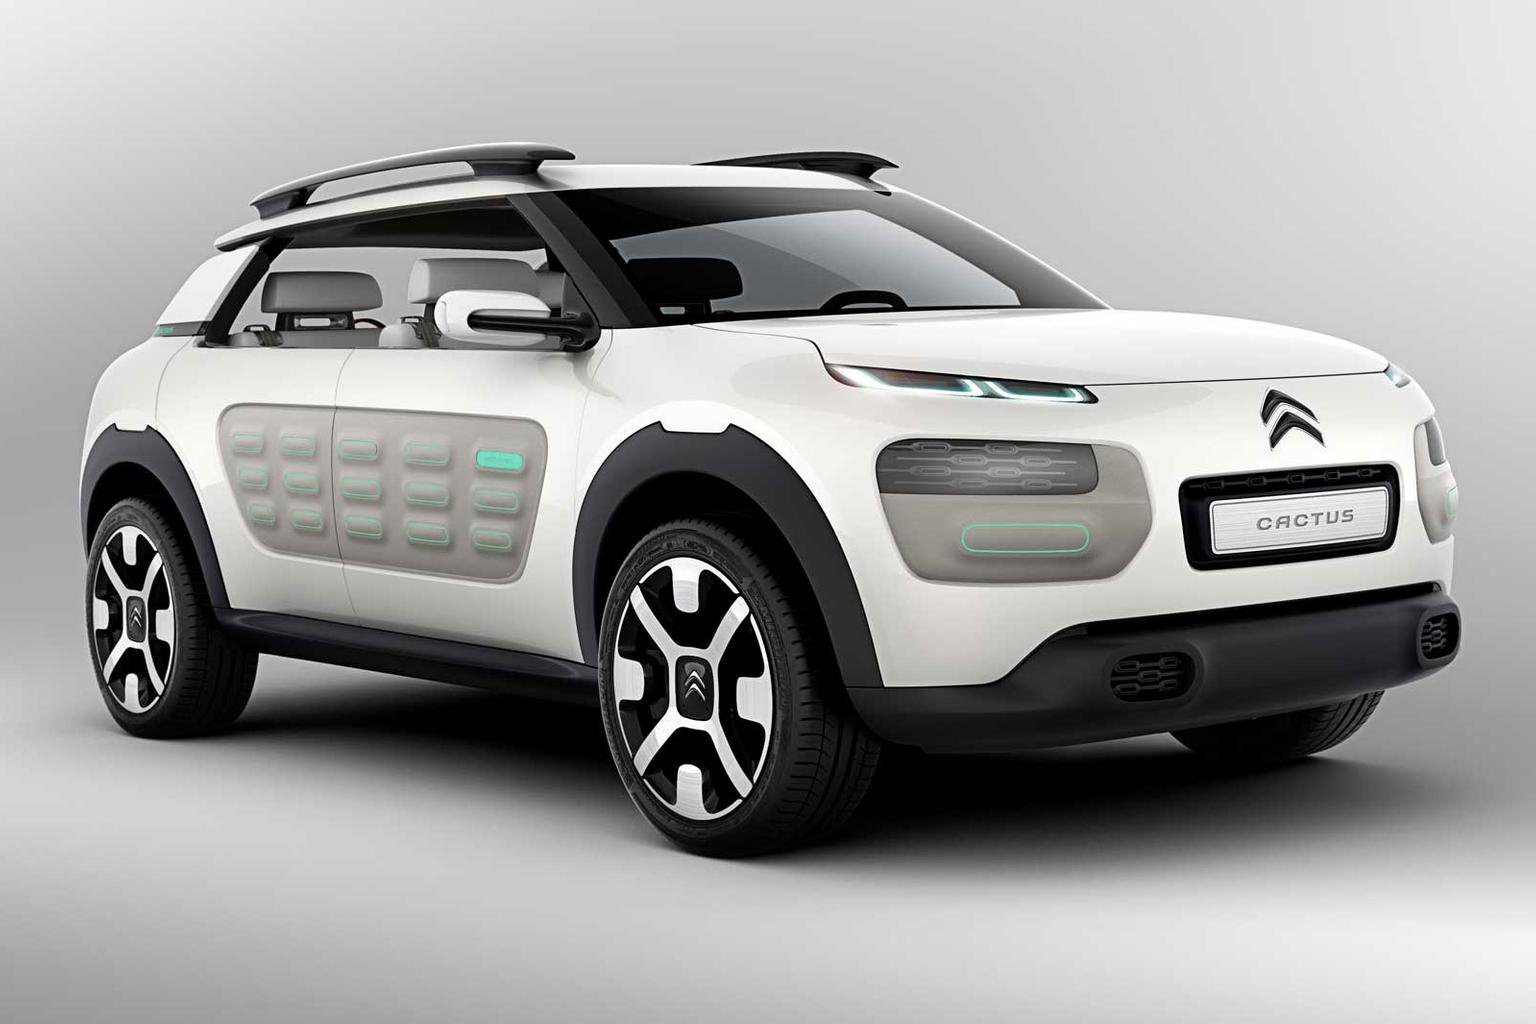 Citroen C4 Cactus 'first of a family'